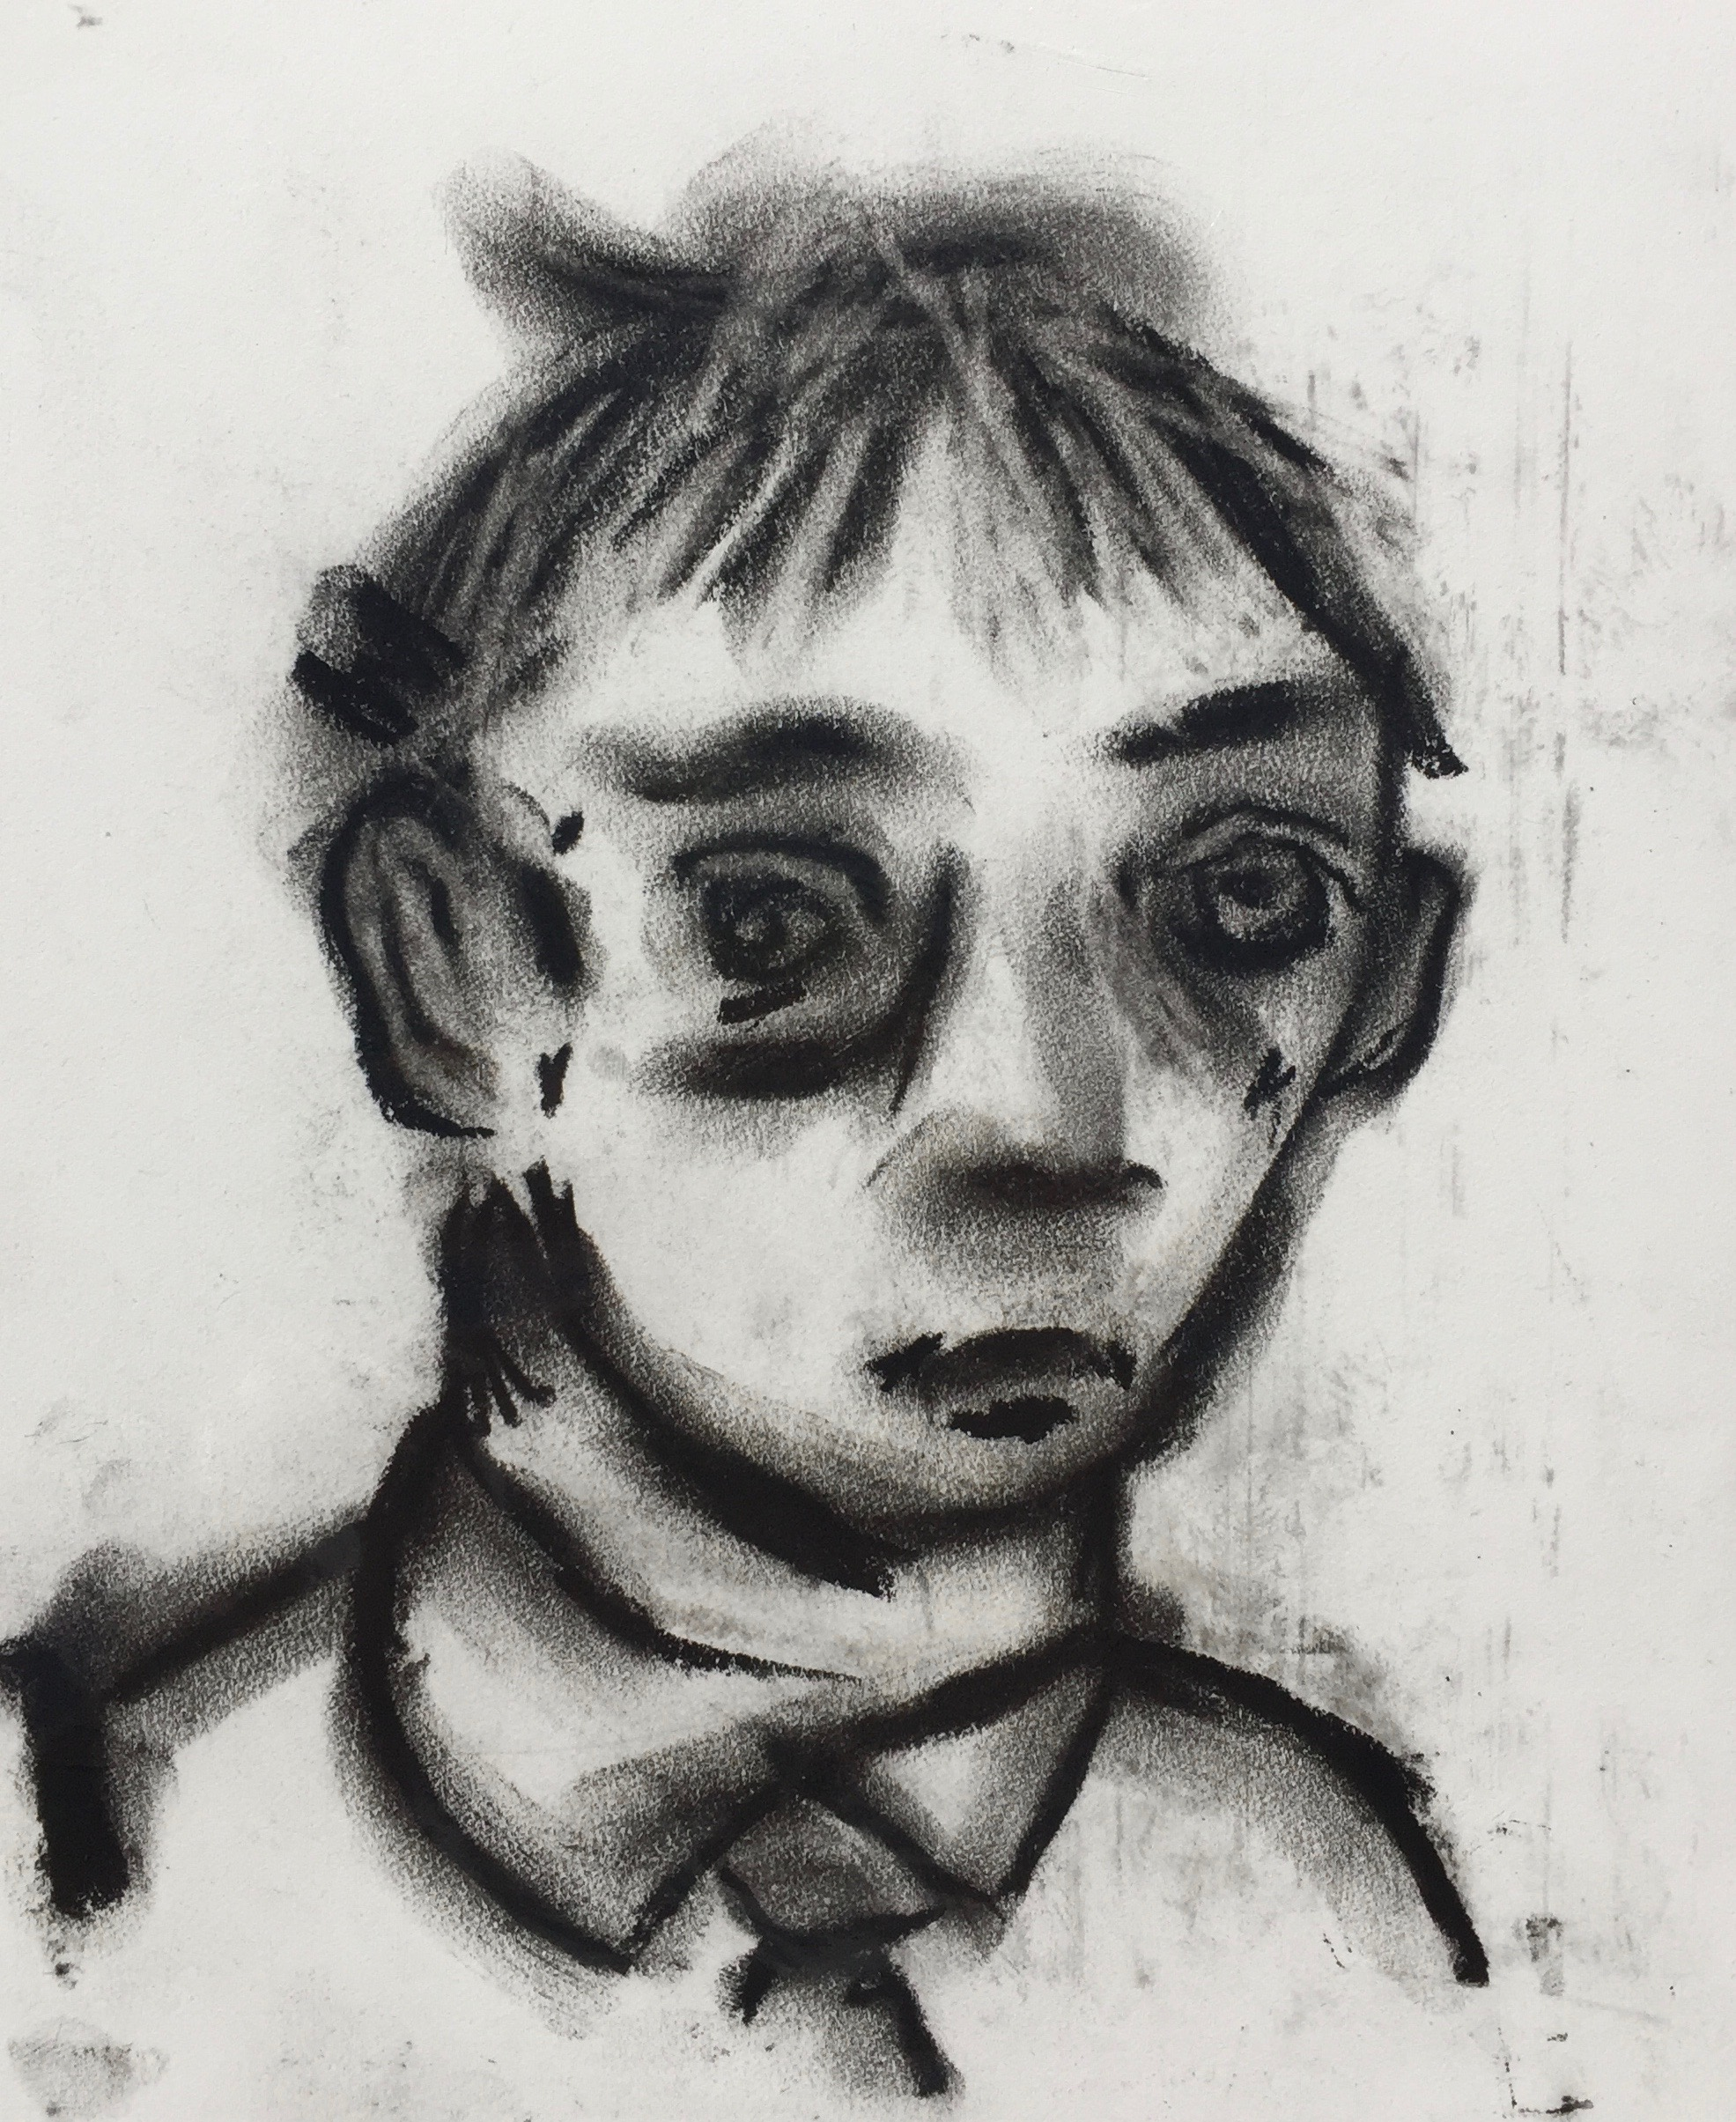 Me    Charcoal on paper  2011  7 x 8.5 In  $700.00